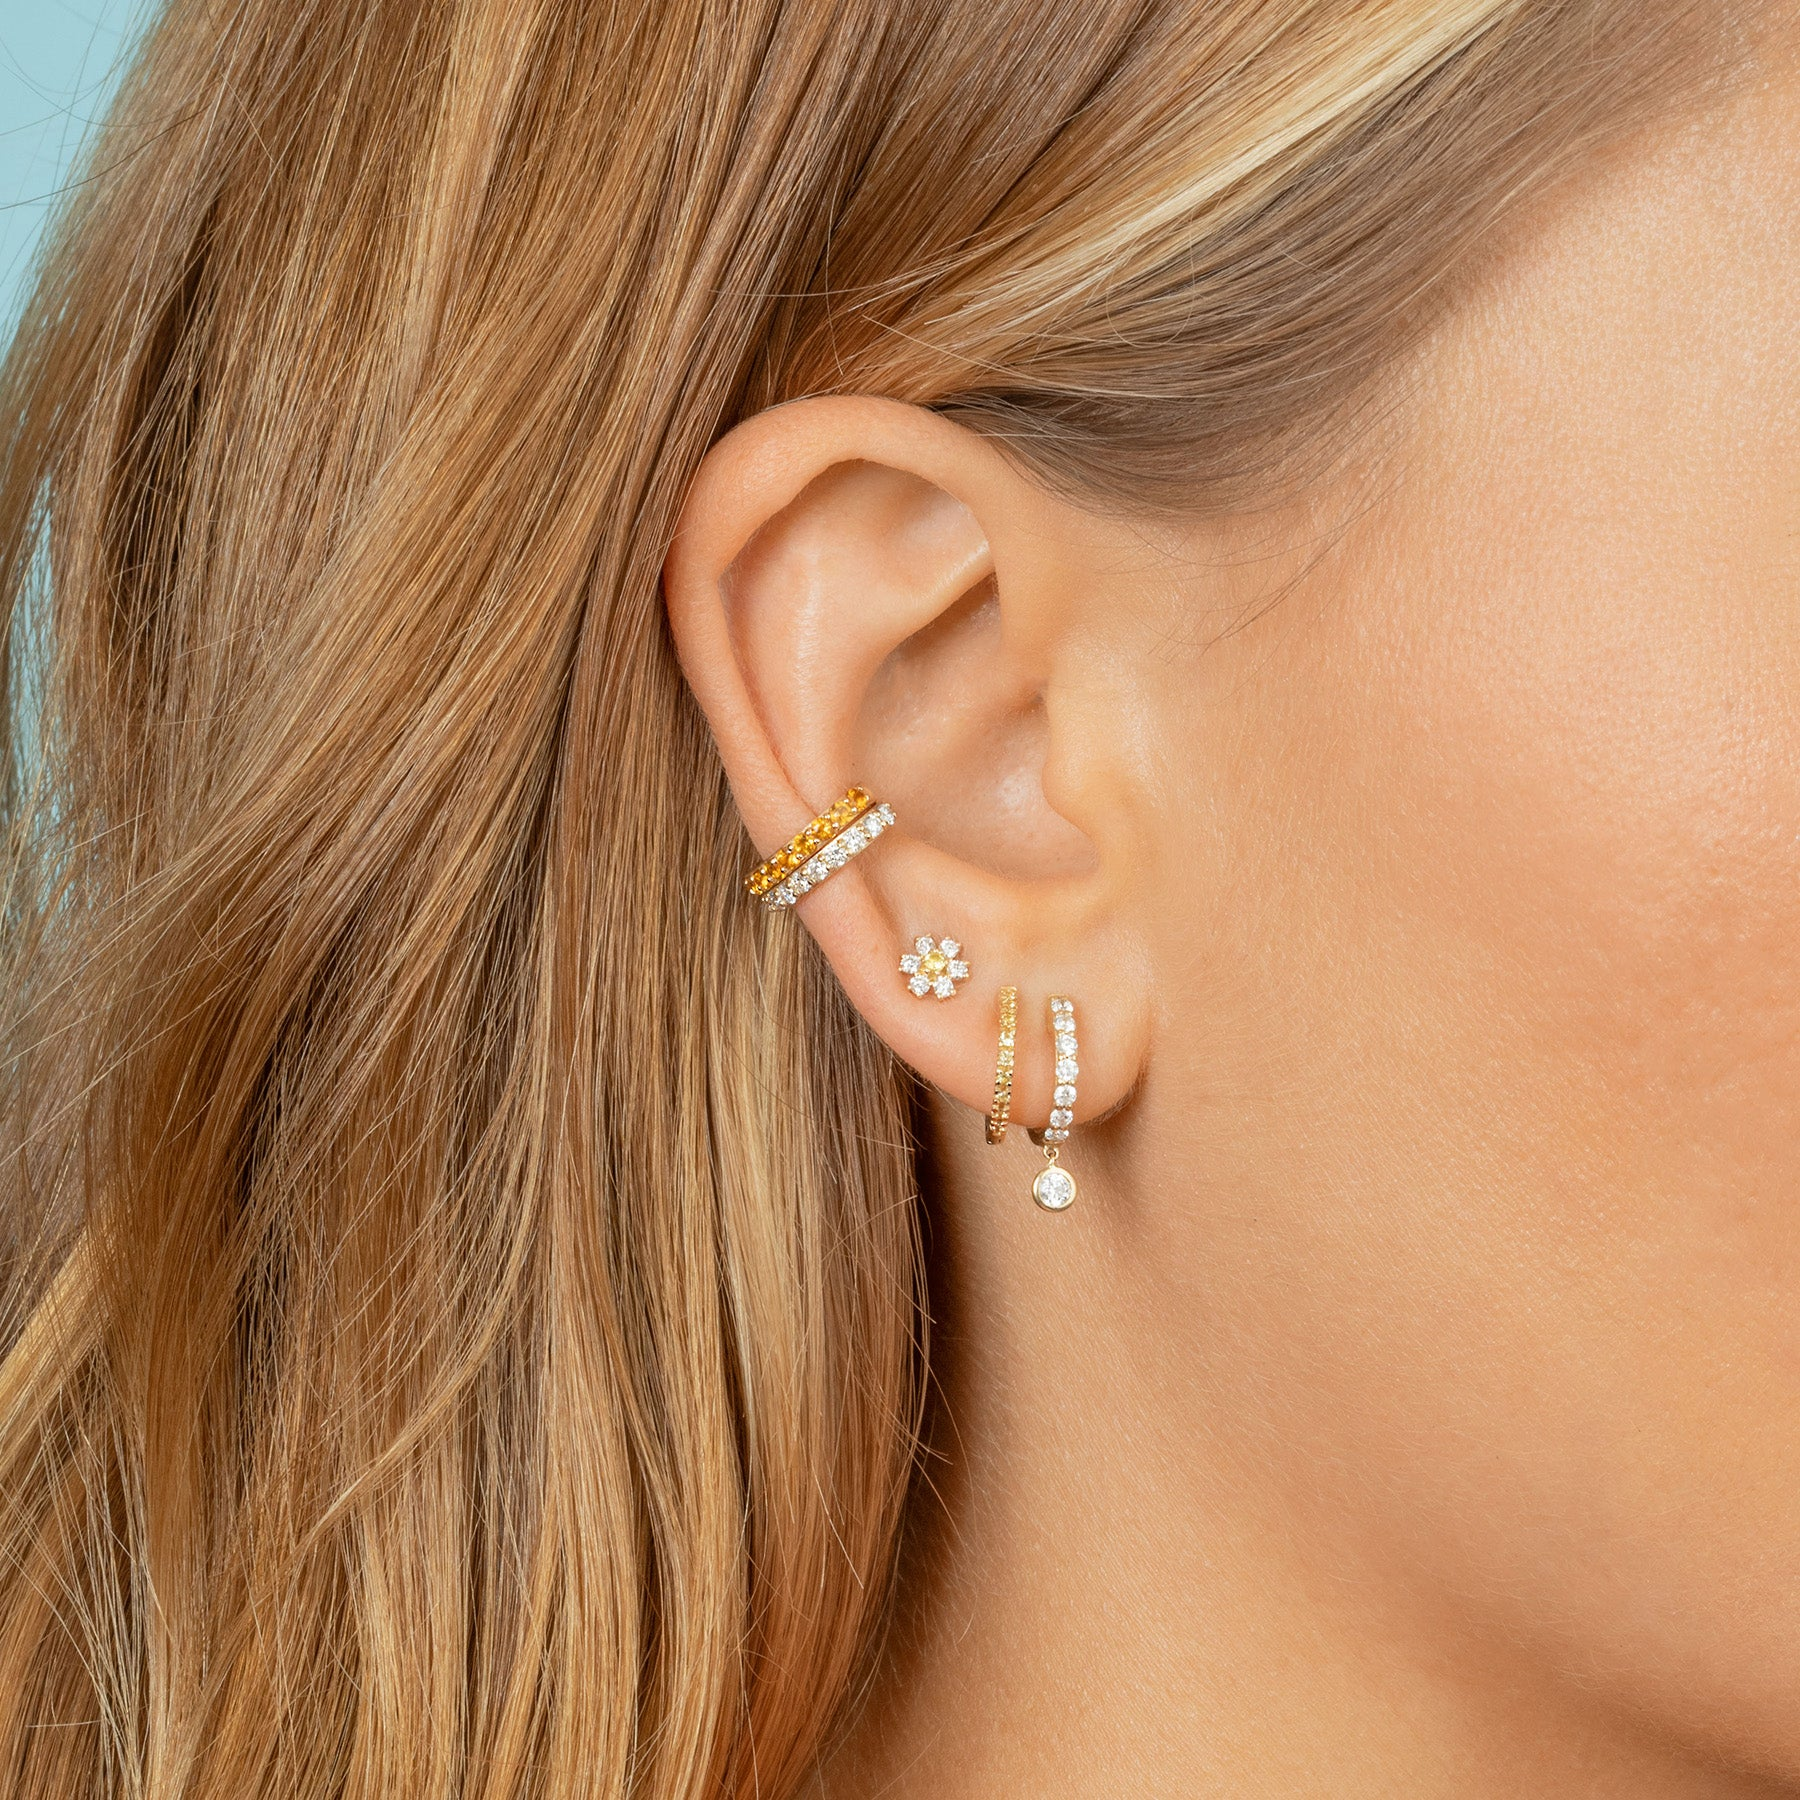 PERFECT CITRINE EAR CUFF